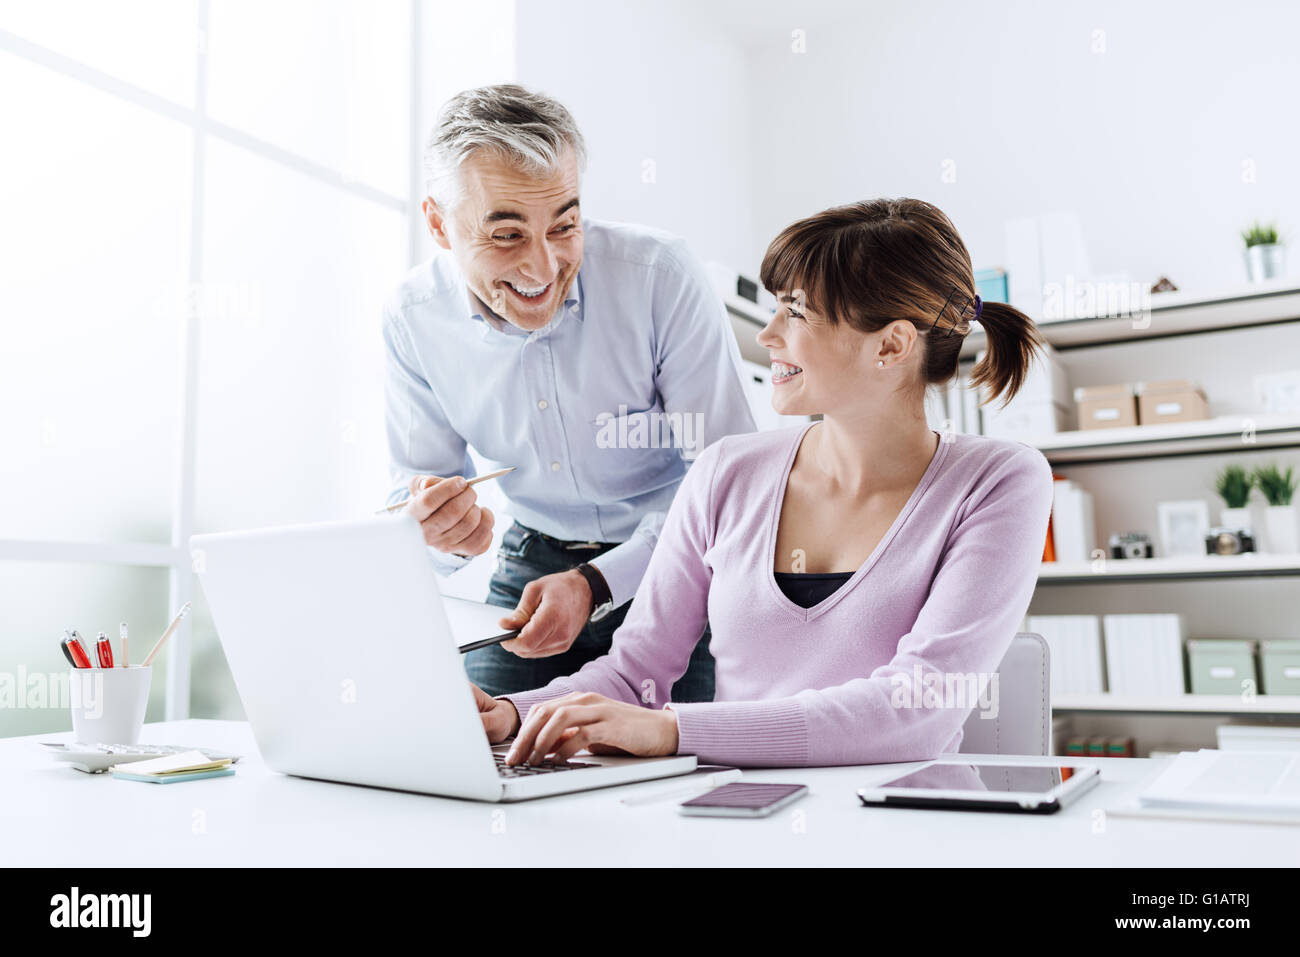 Cheerful business people in the office, they are working together and smiling, the woman is typing on a laptop - Stock Image